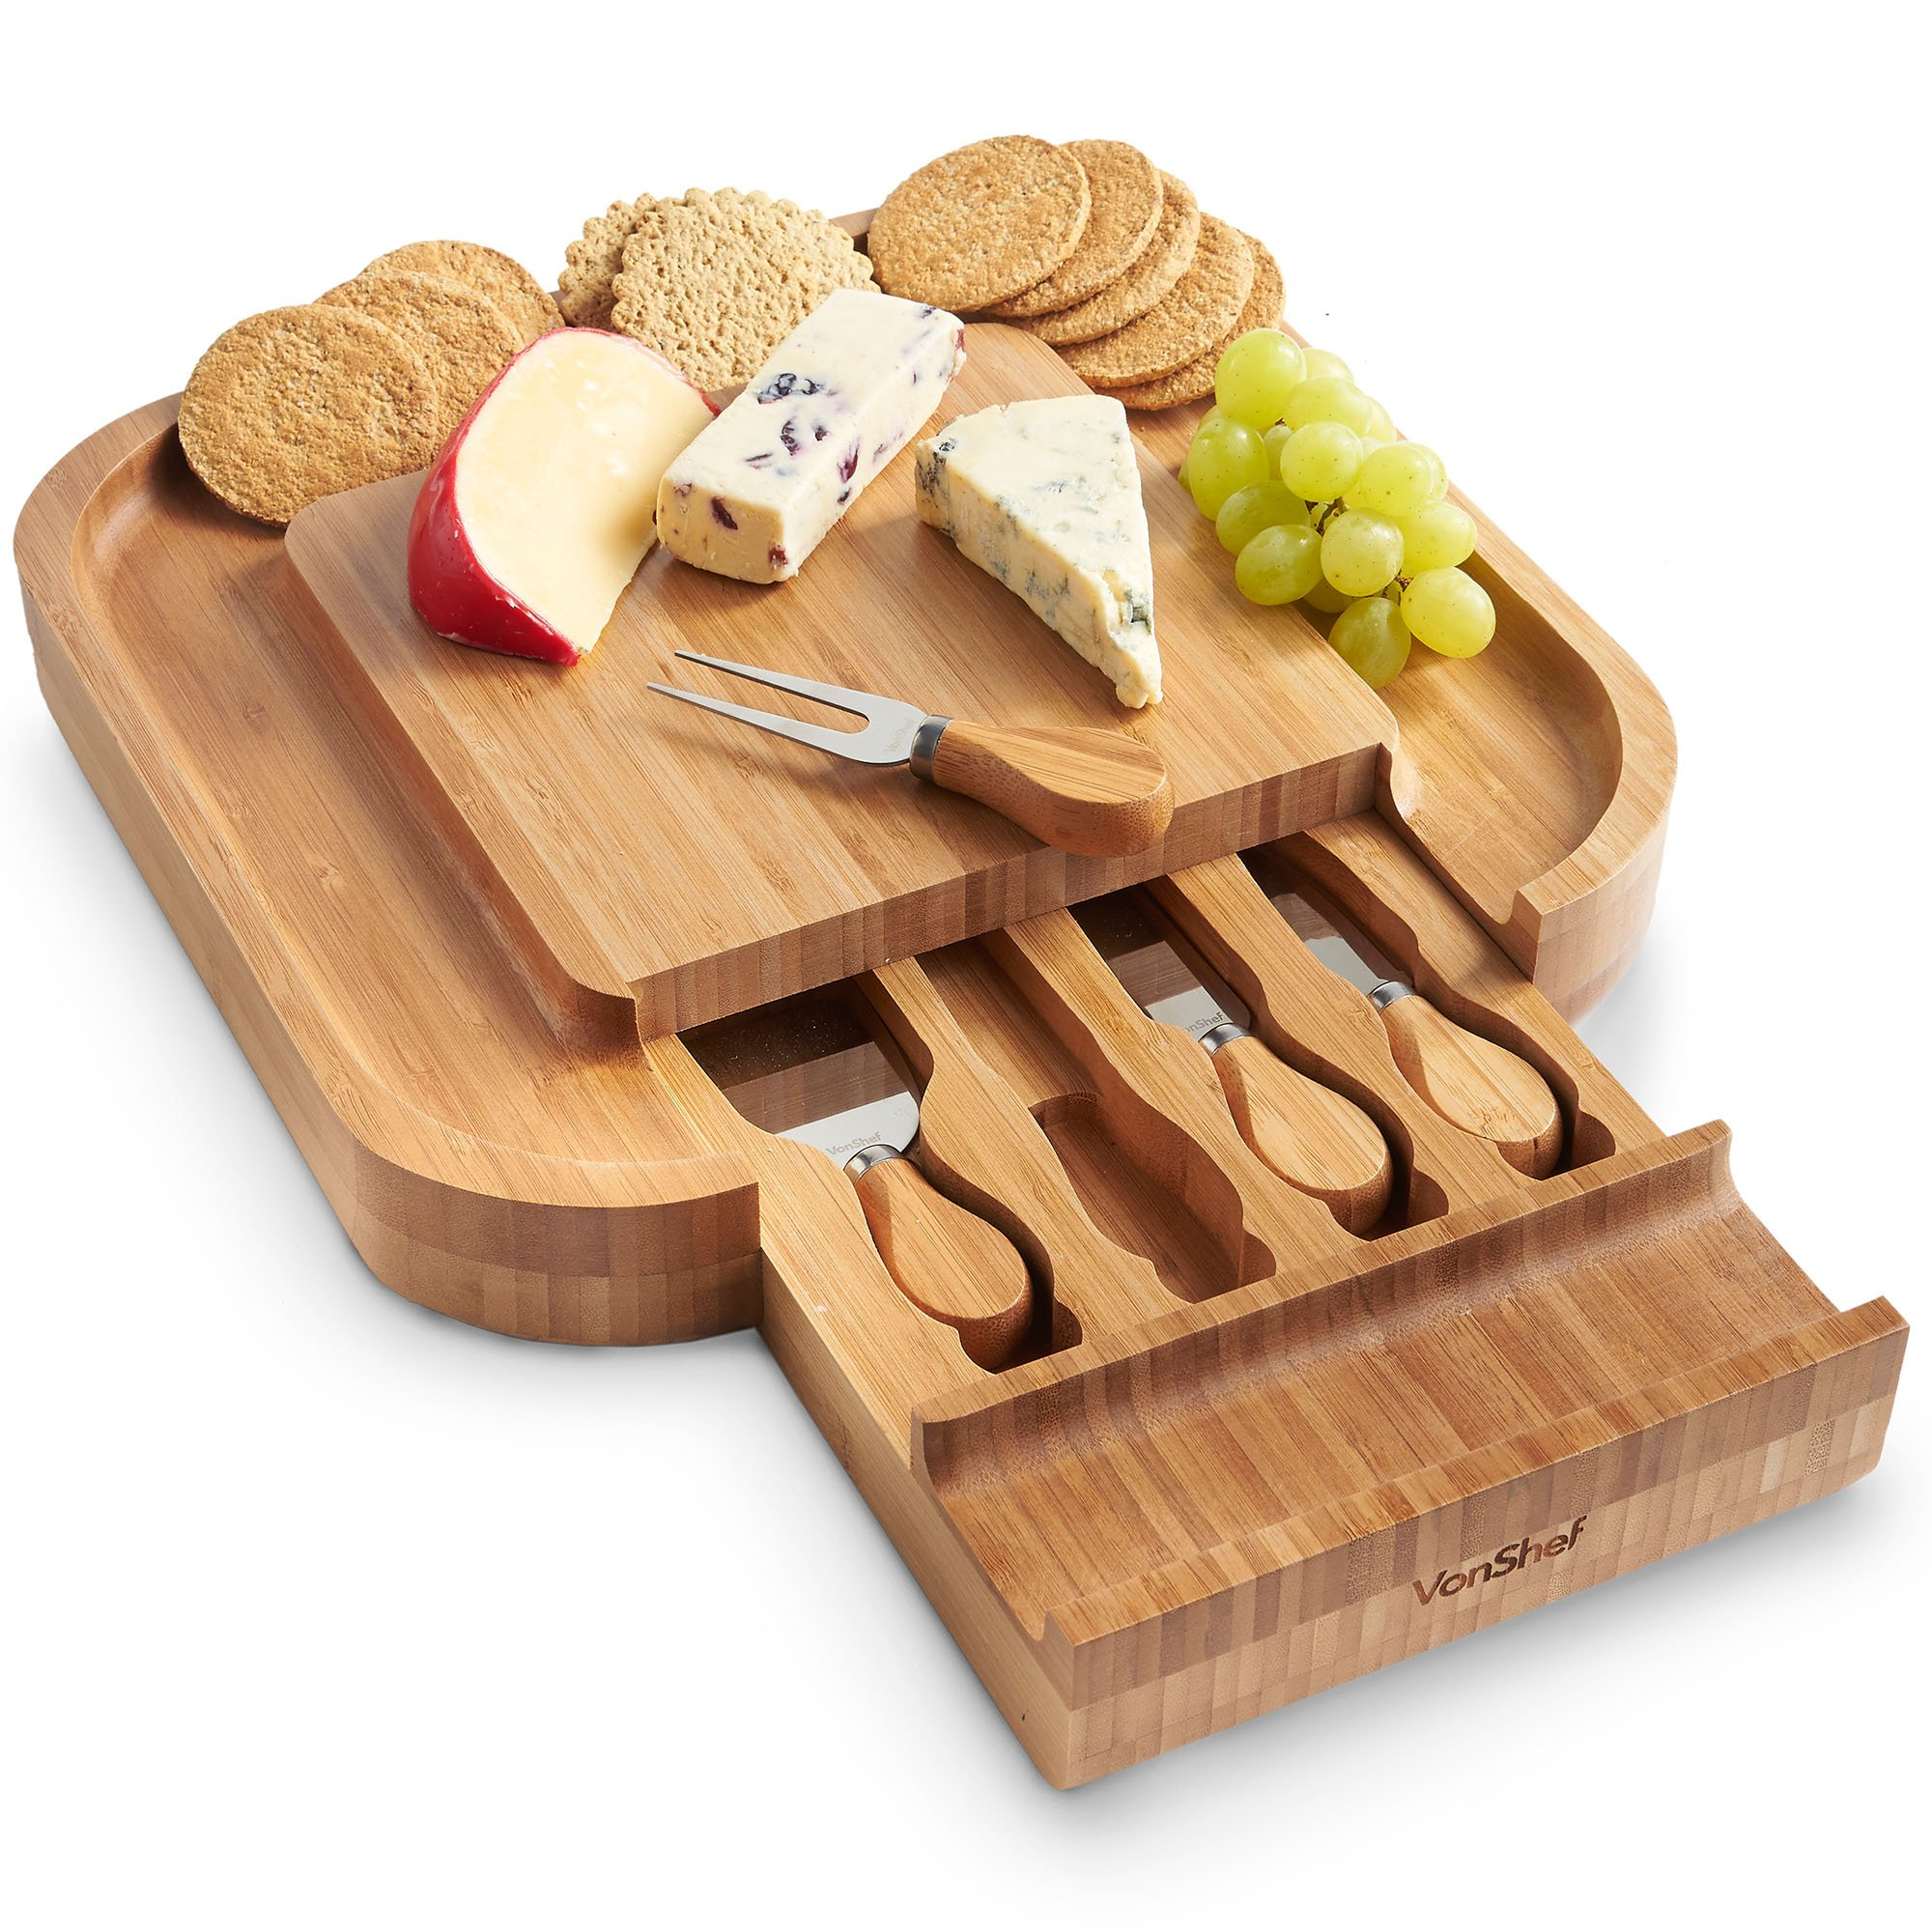 VonShef Square Slide Out Bamboo Cheese Board and 4 Piece Knife Set, 13 x 13 inches by VonShef (Image #1)